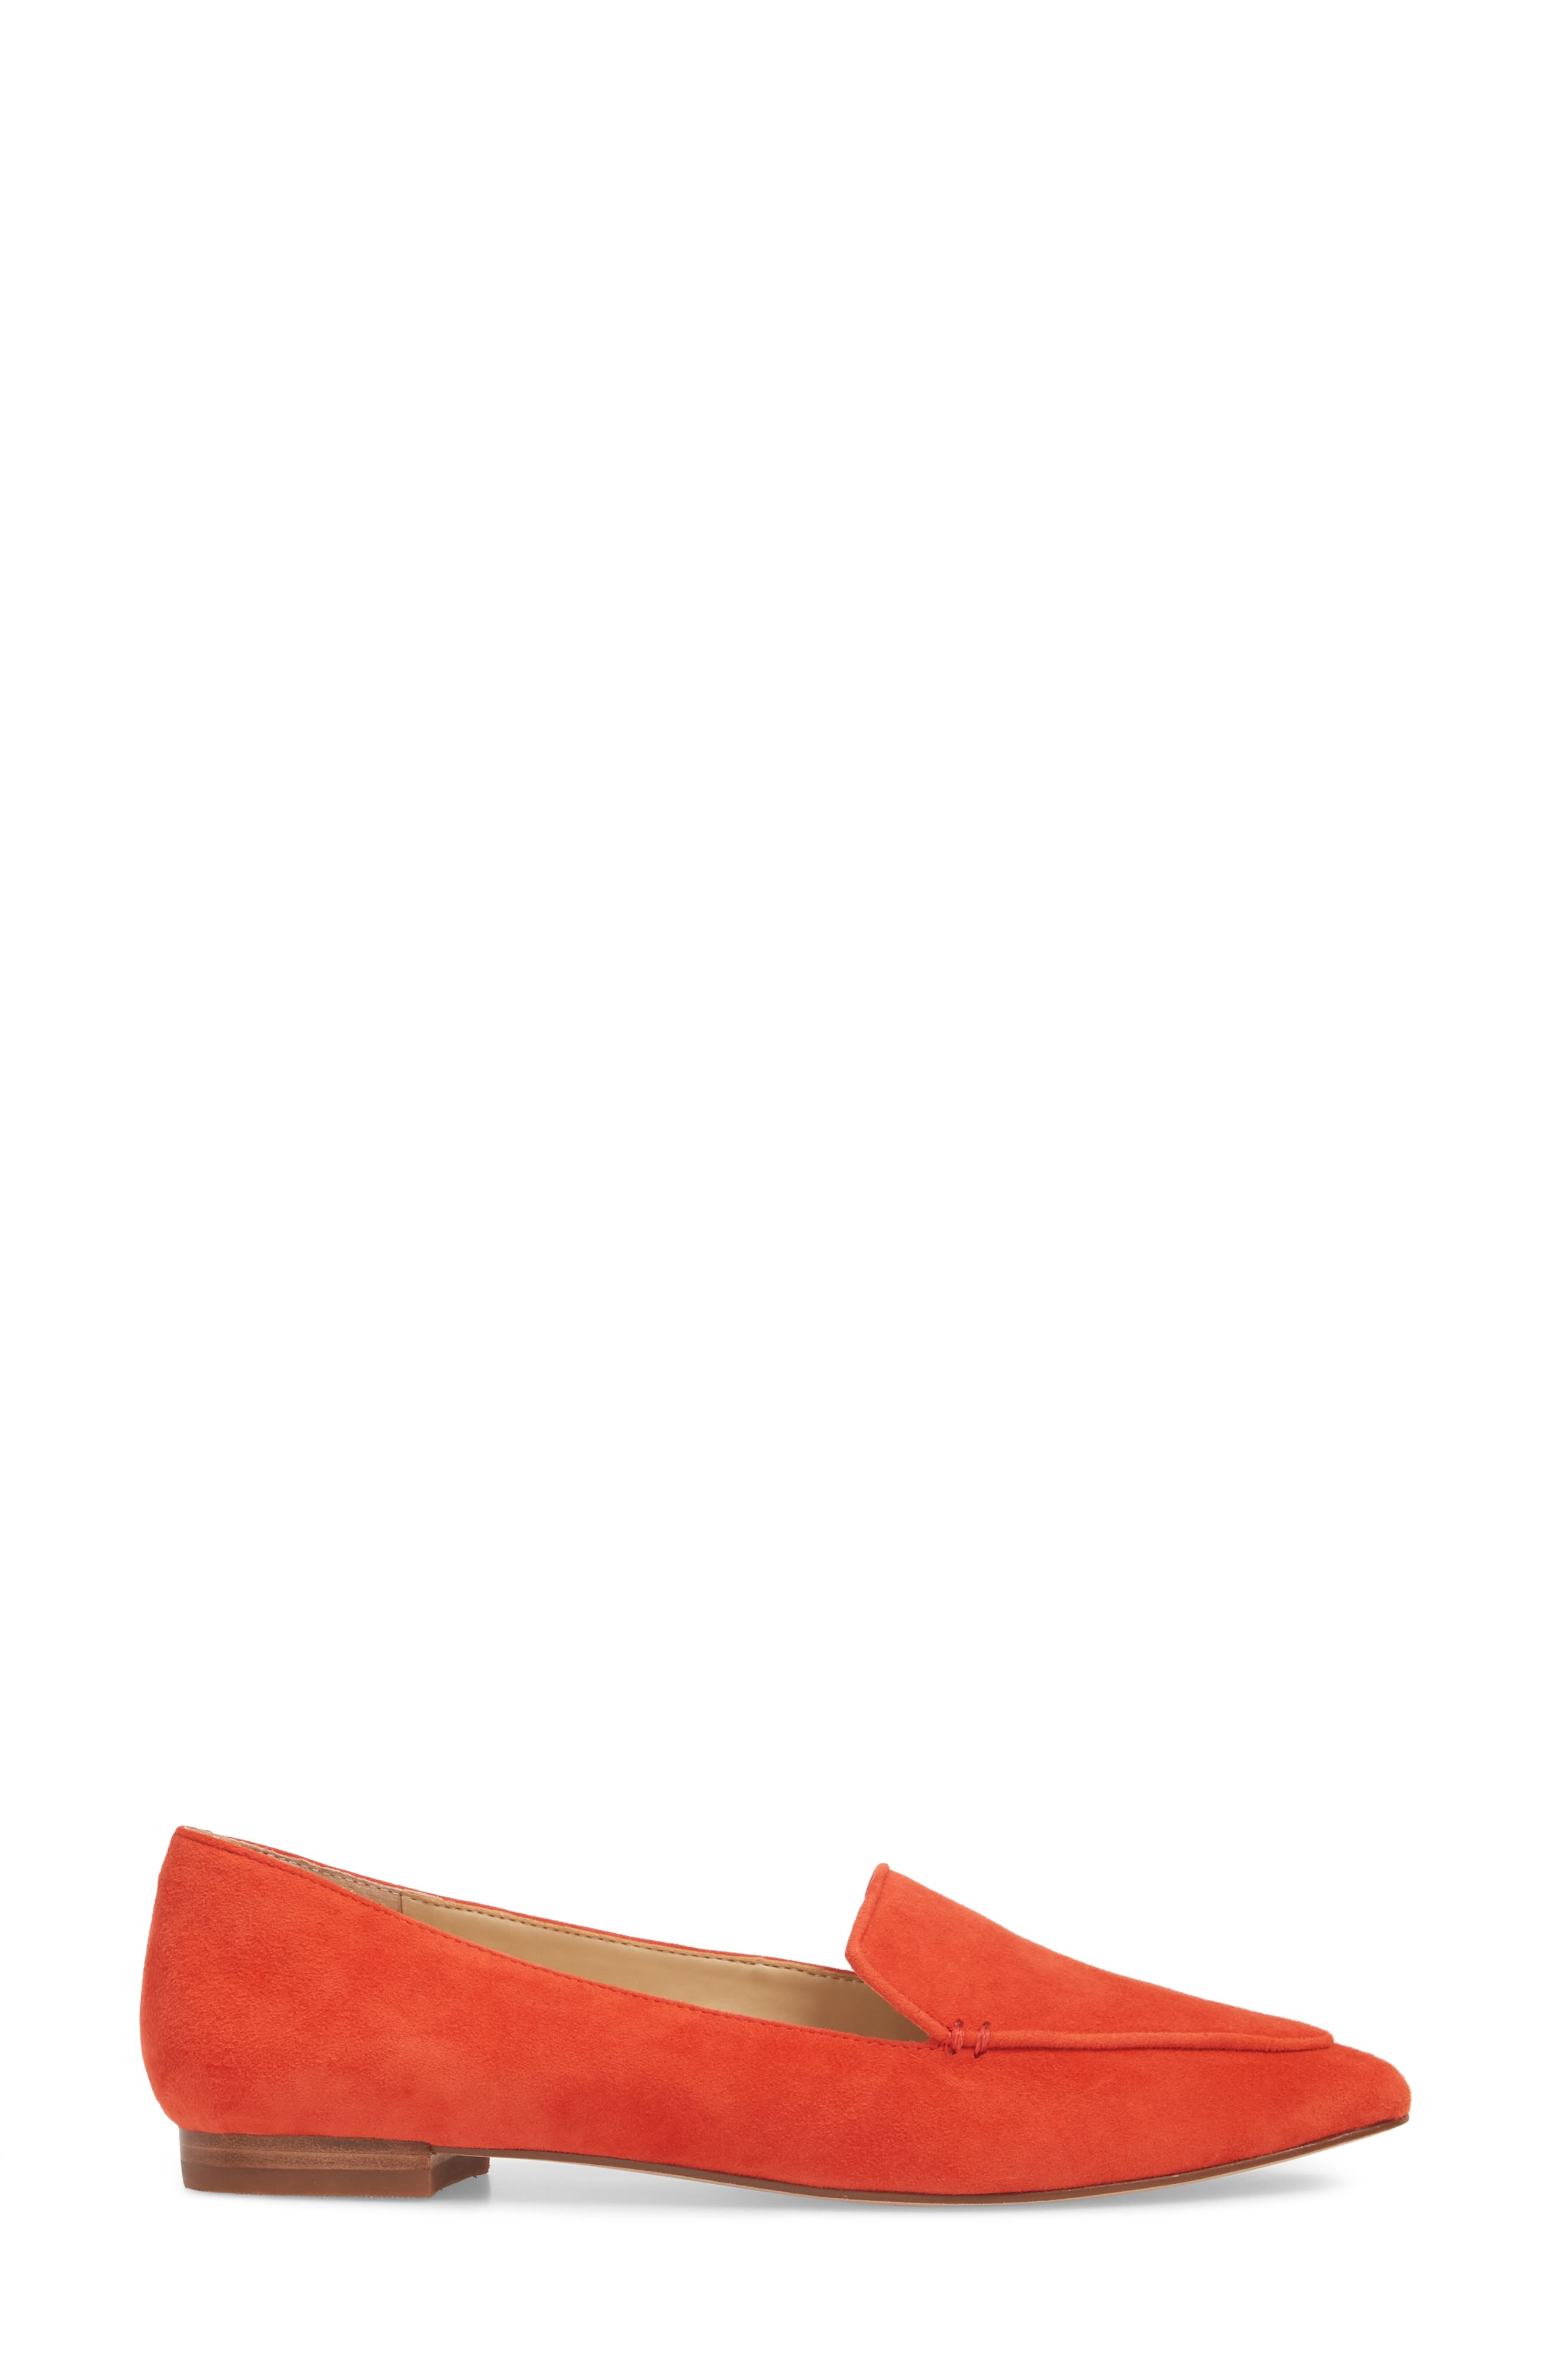 'Cammila' Pointy Toe Loafer,                             Alternate thumbnail 3, color,                             Deep Coral